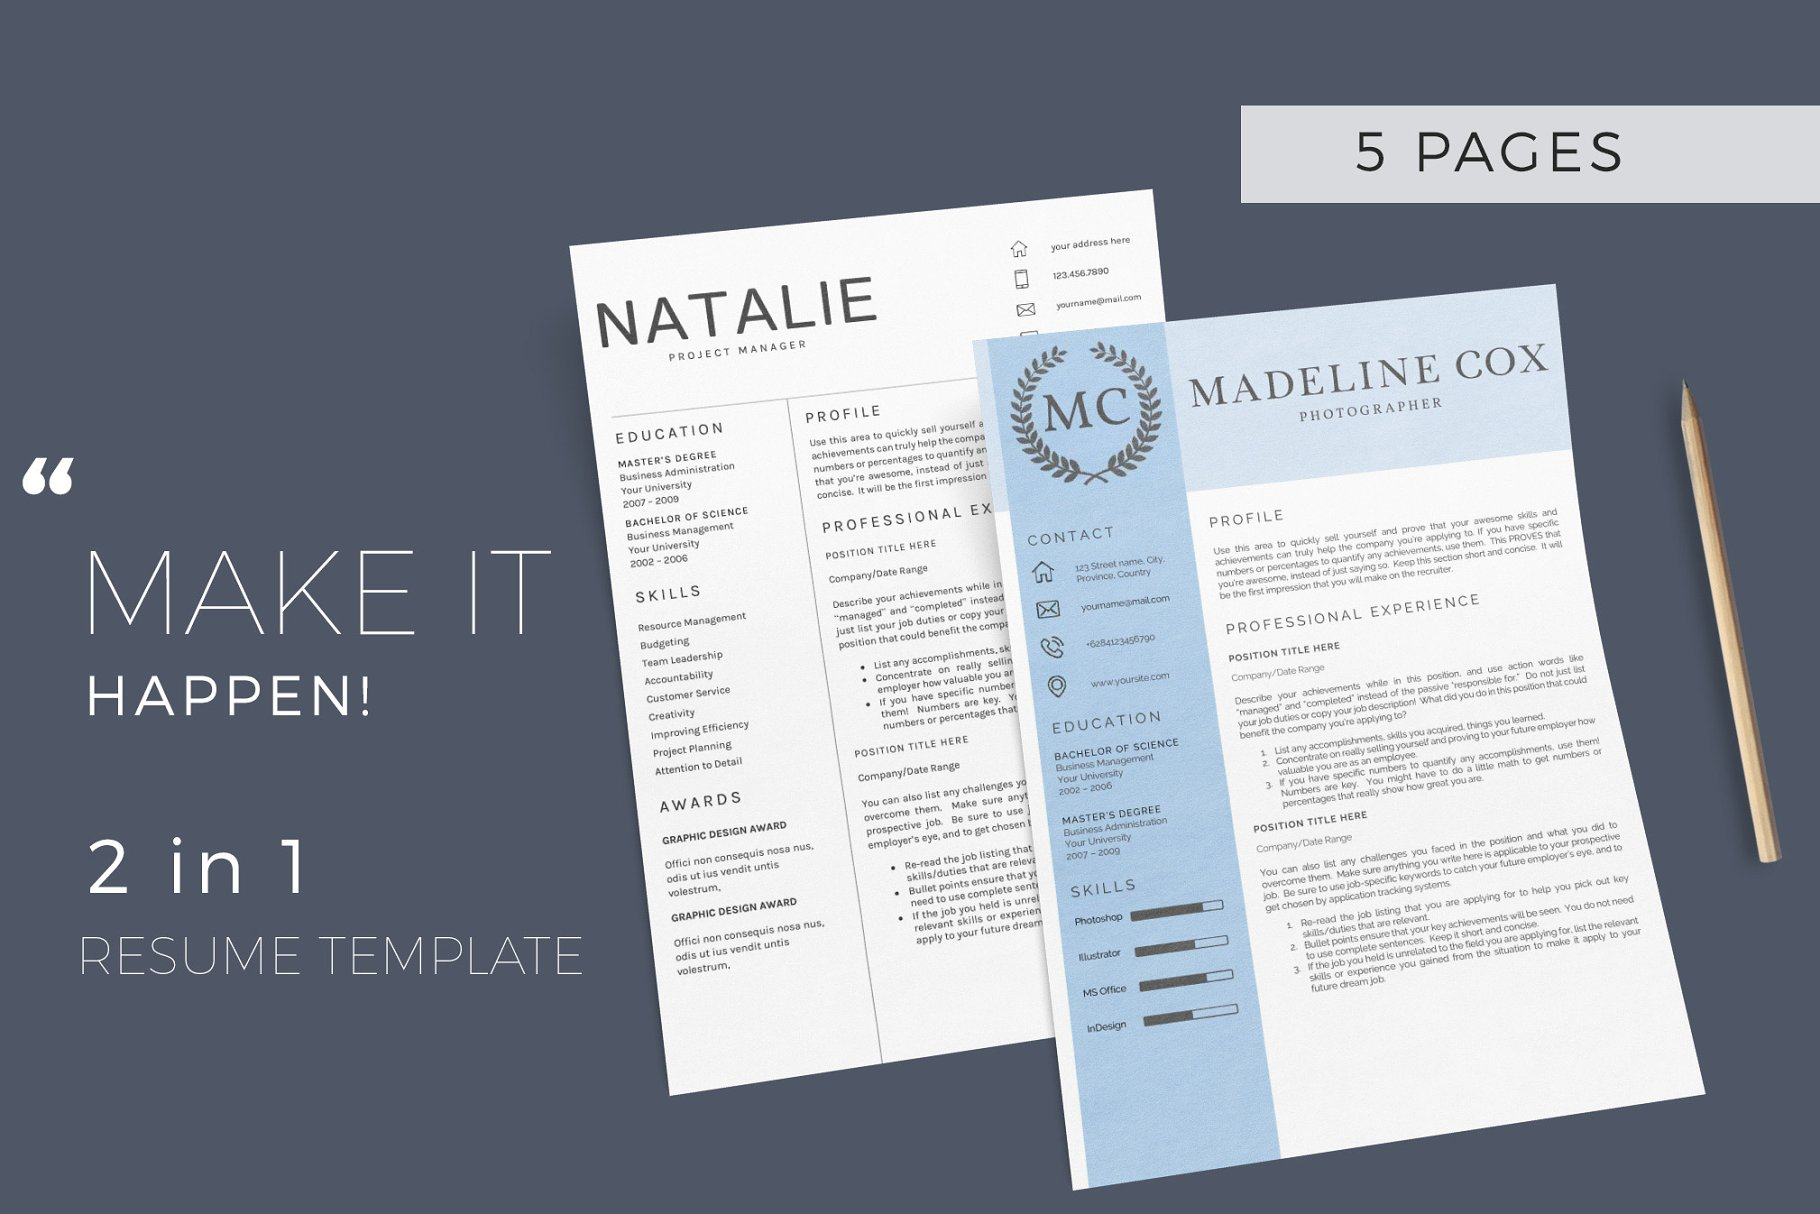 resume template 5 pages cv resume templates creative market pro